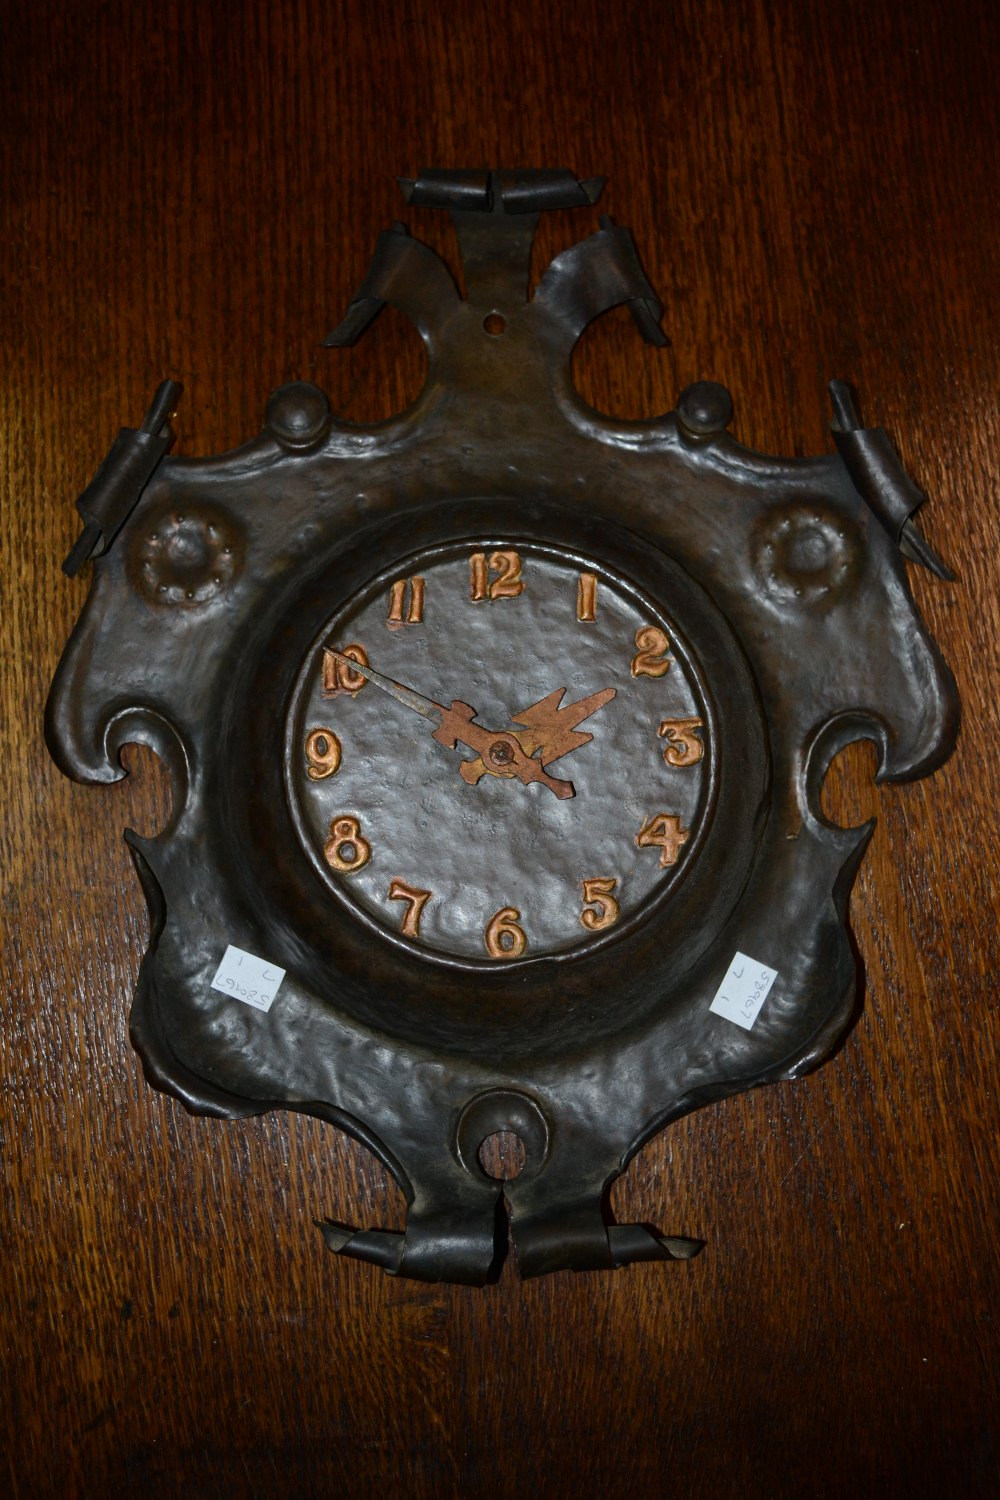 An arts and crafts style wall clock for Arts and crafts style wall clock